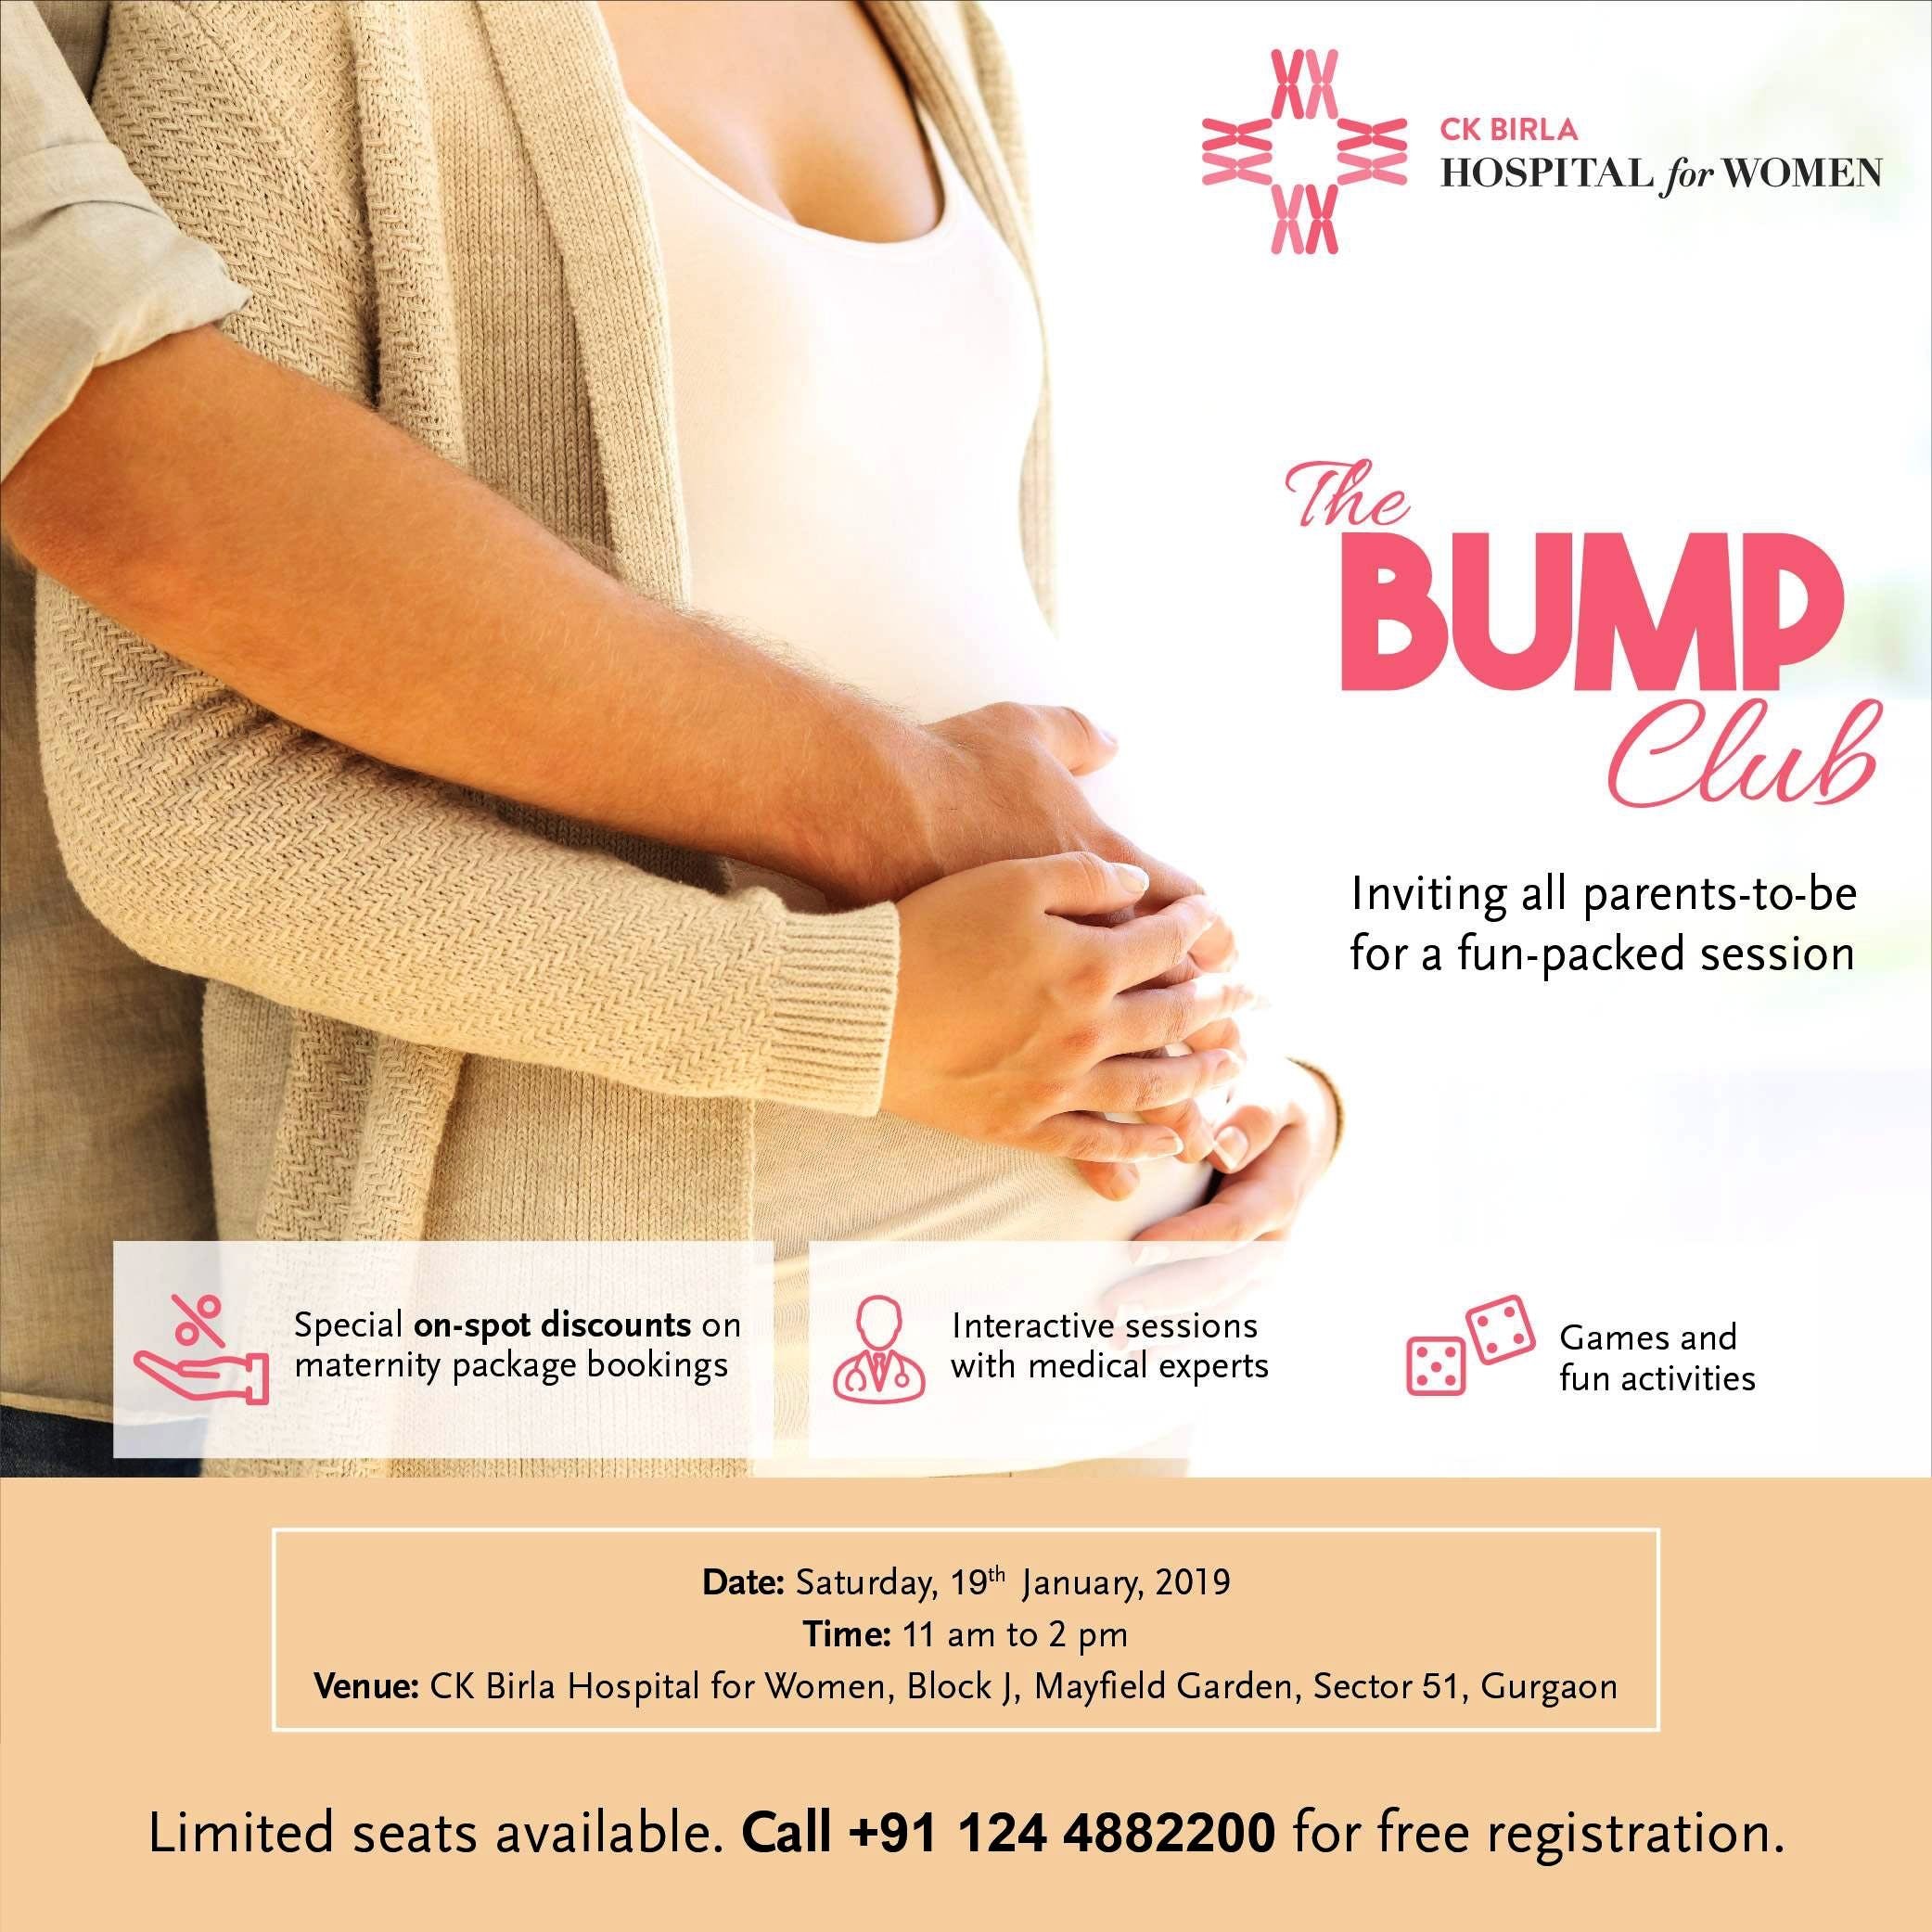 image - CK Birla Hospital For Women